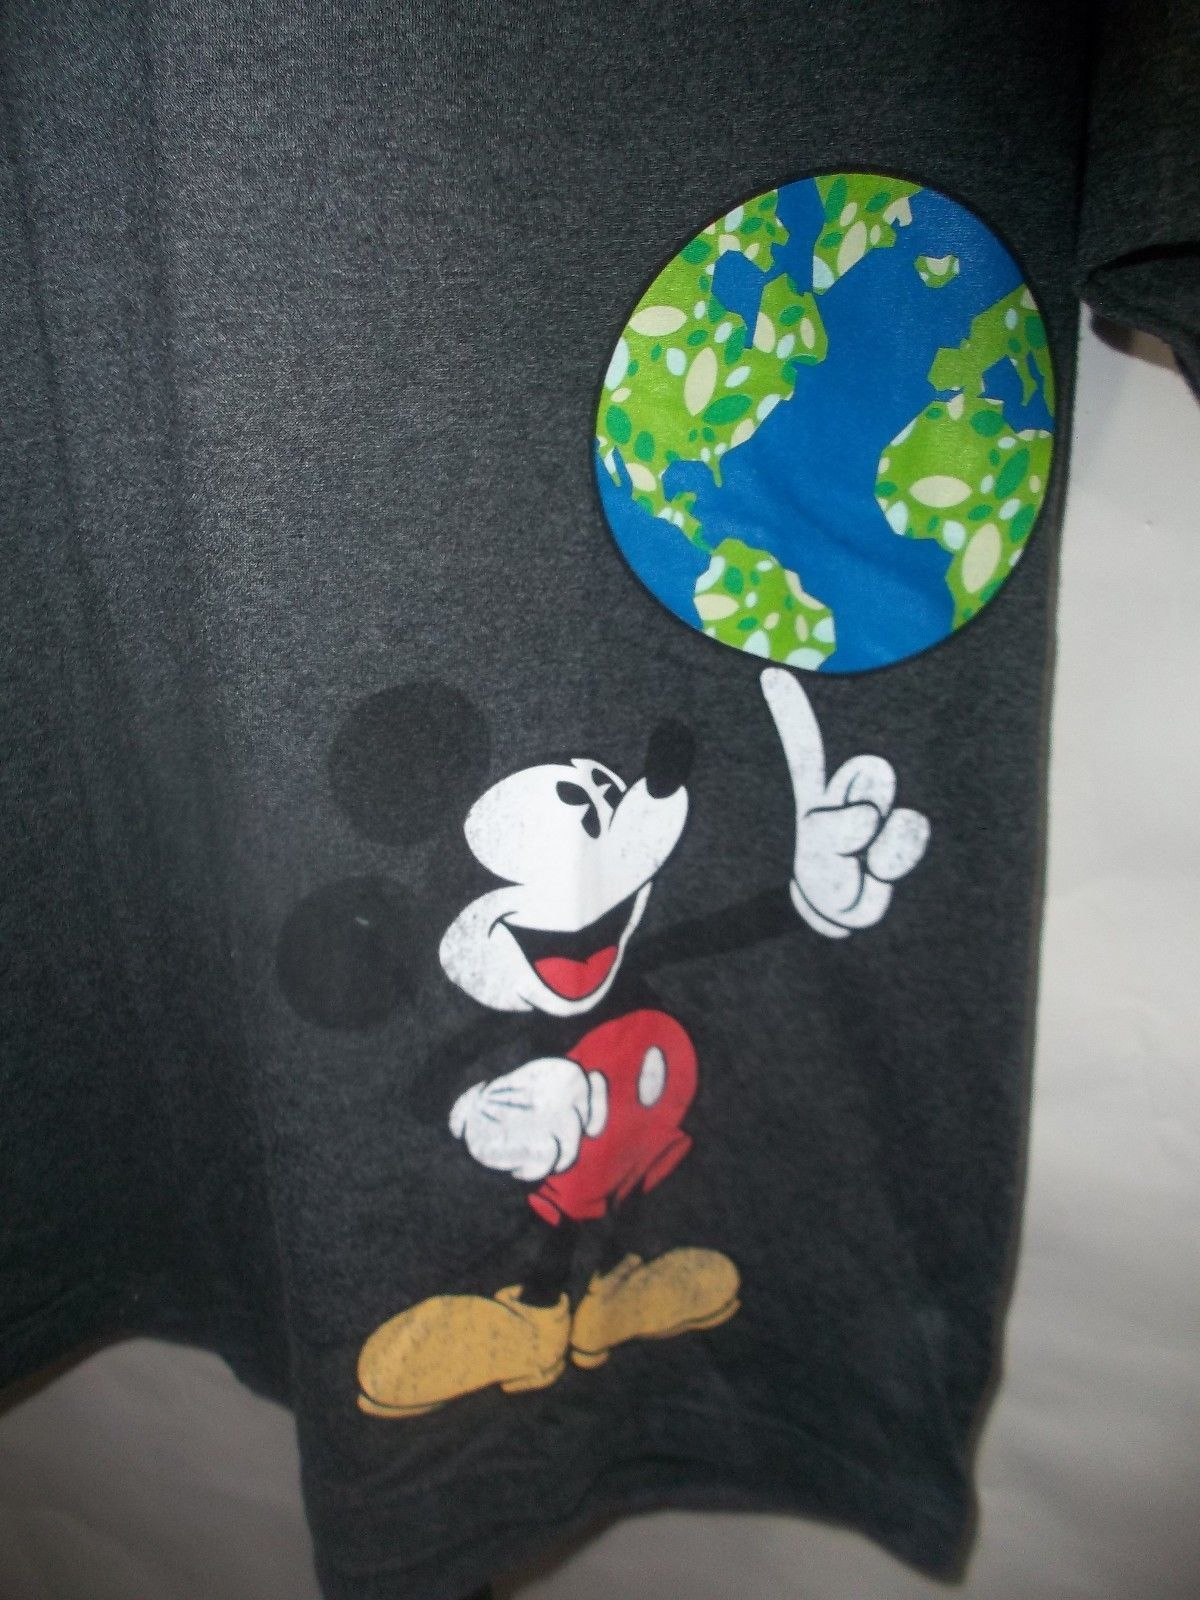 Disney Mickey Mouse Tee (Charcoal Heather Greyl) Men's T-Shirt Medium